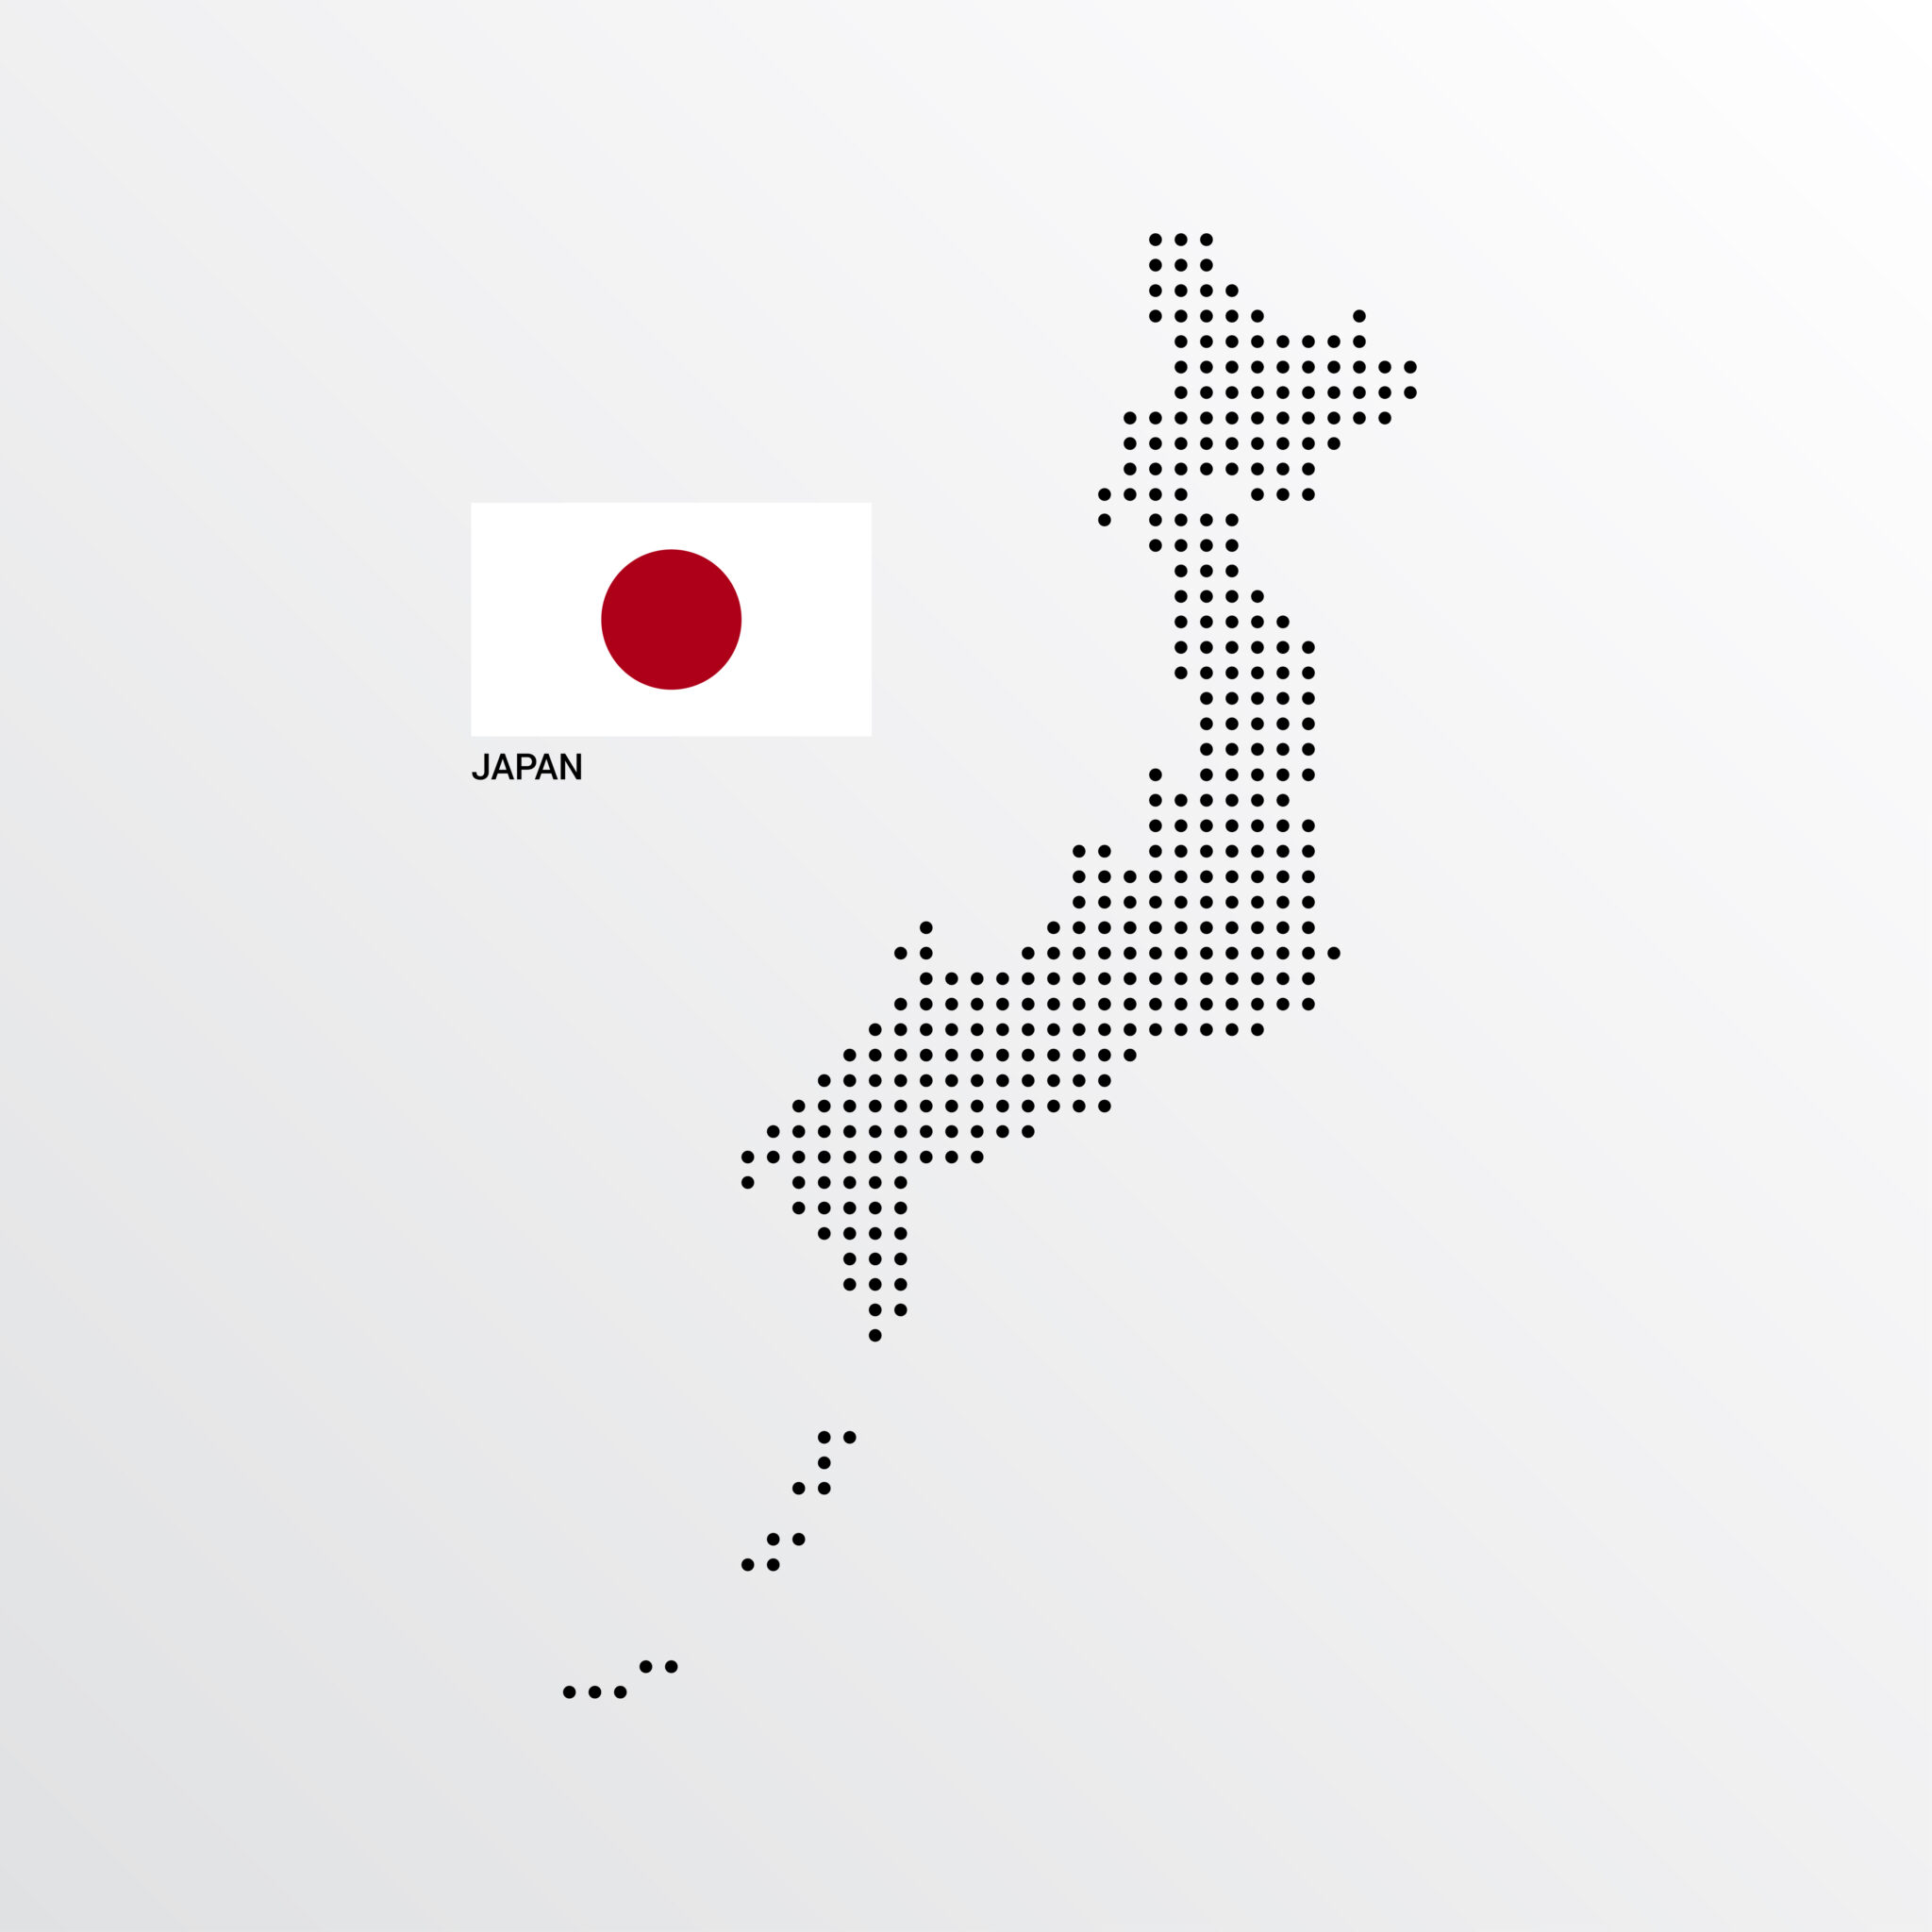 Japan to launch own digital currency